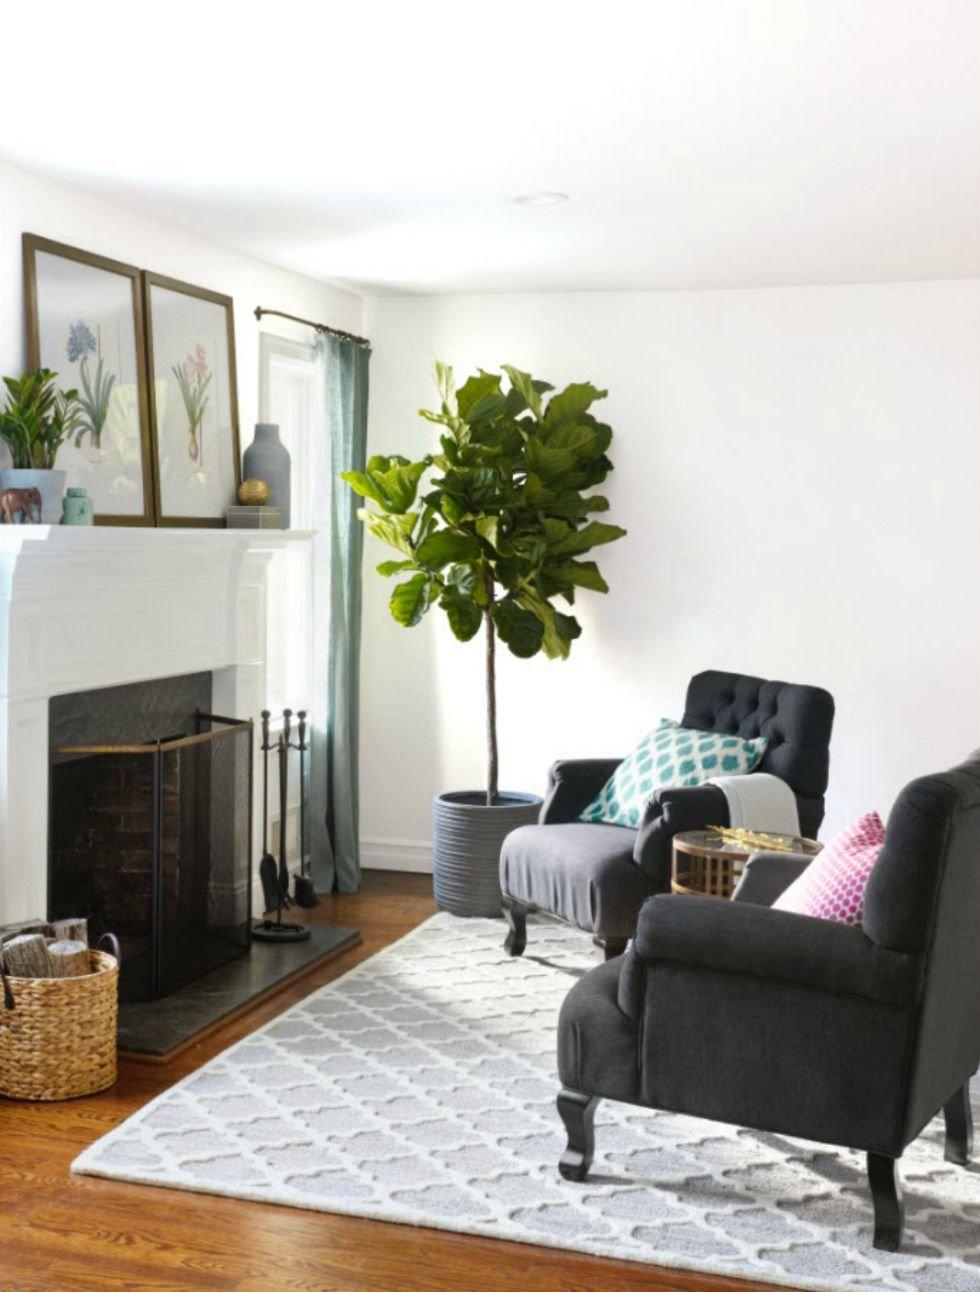 How This Cluttered Living Room Turned Into A Stunning Living Space